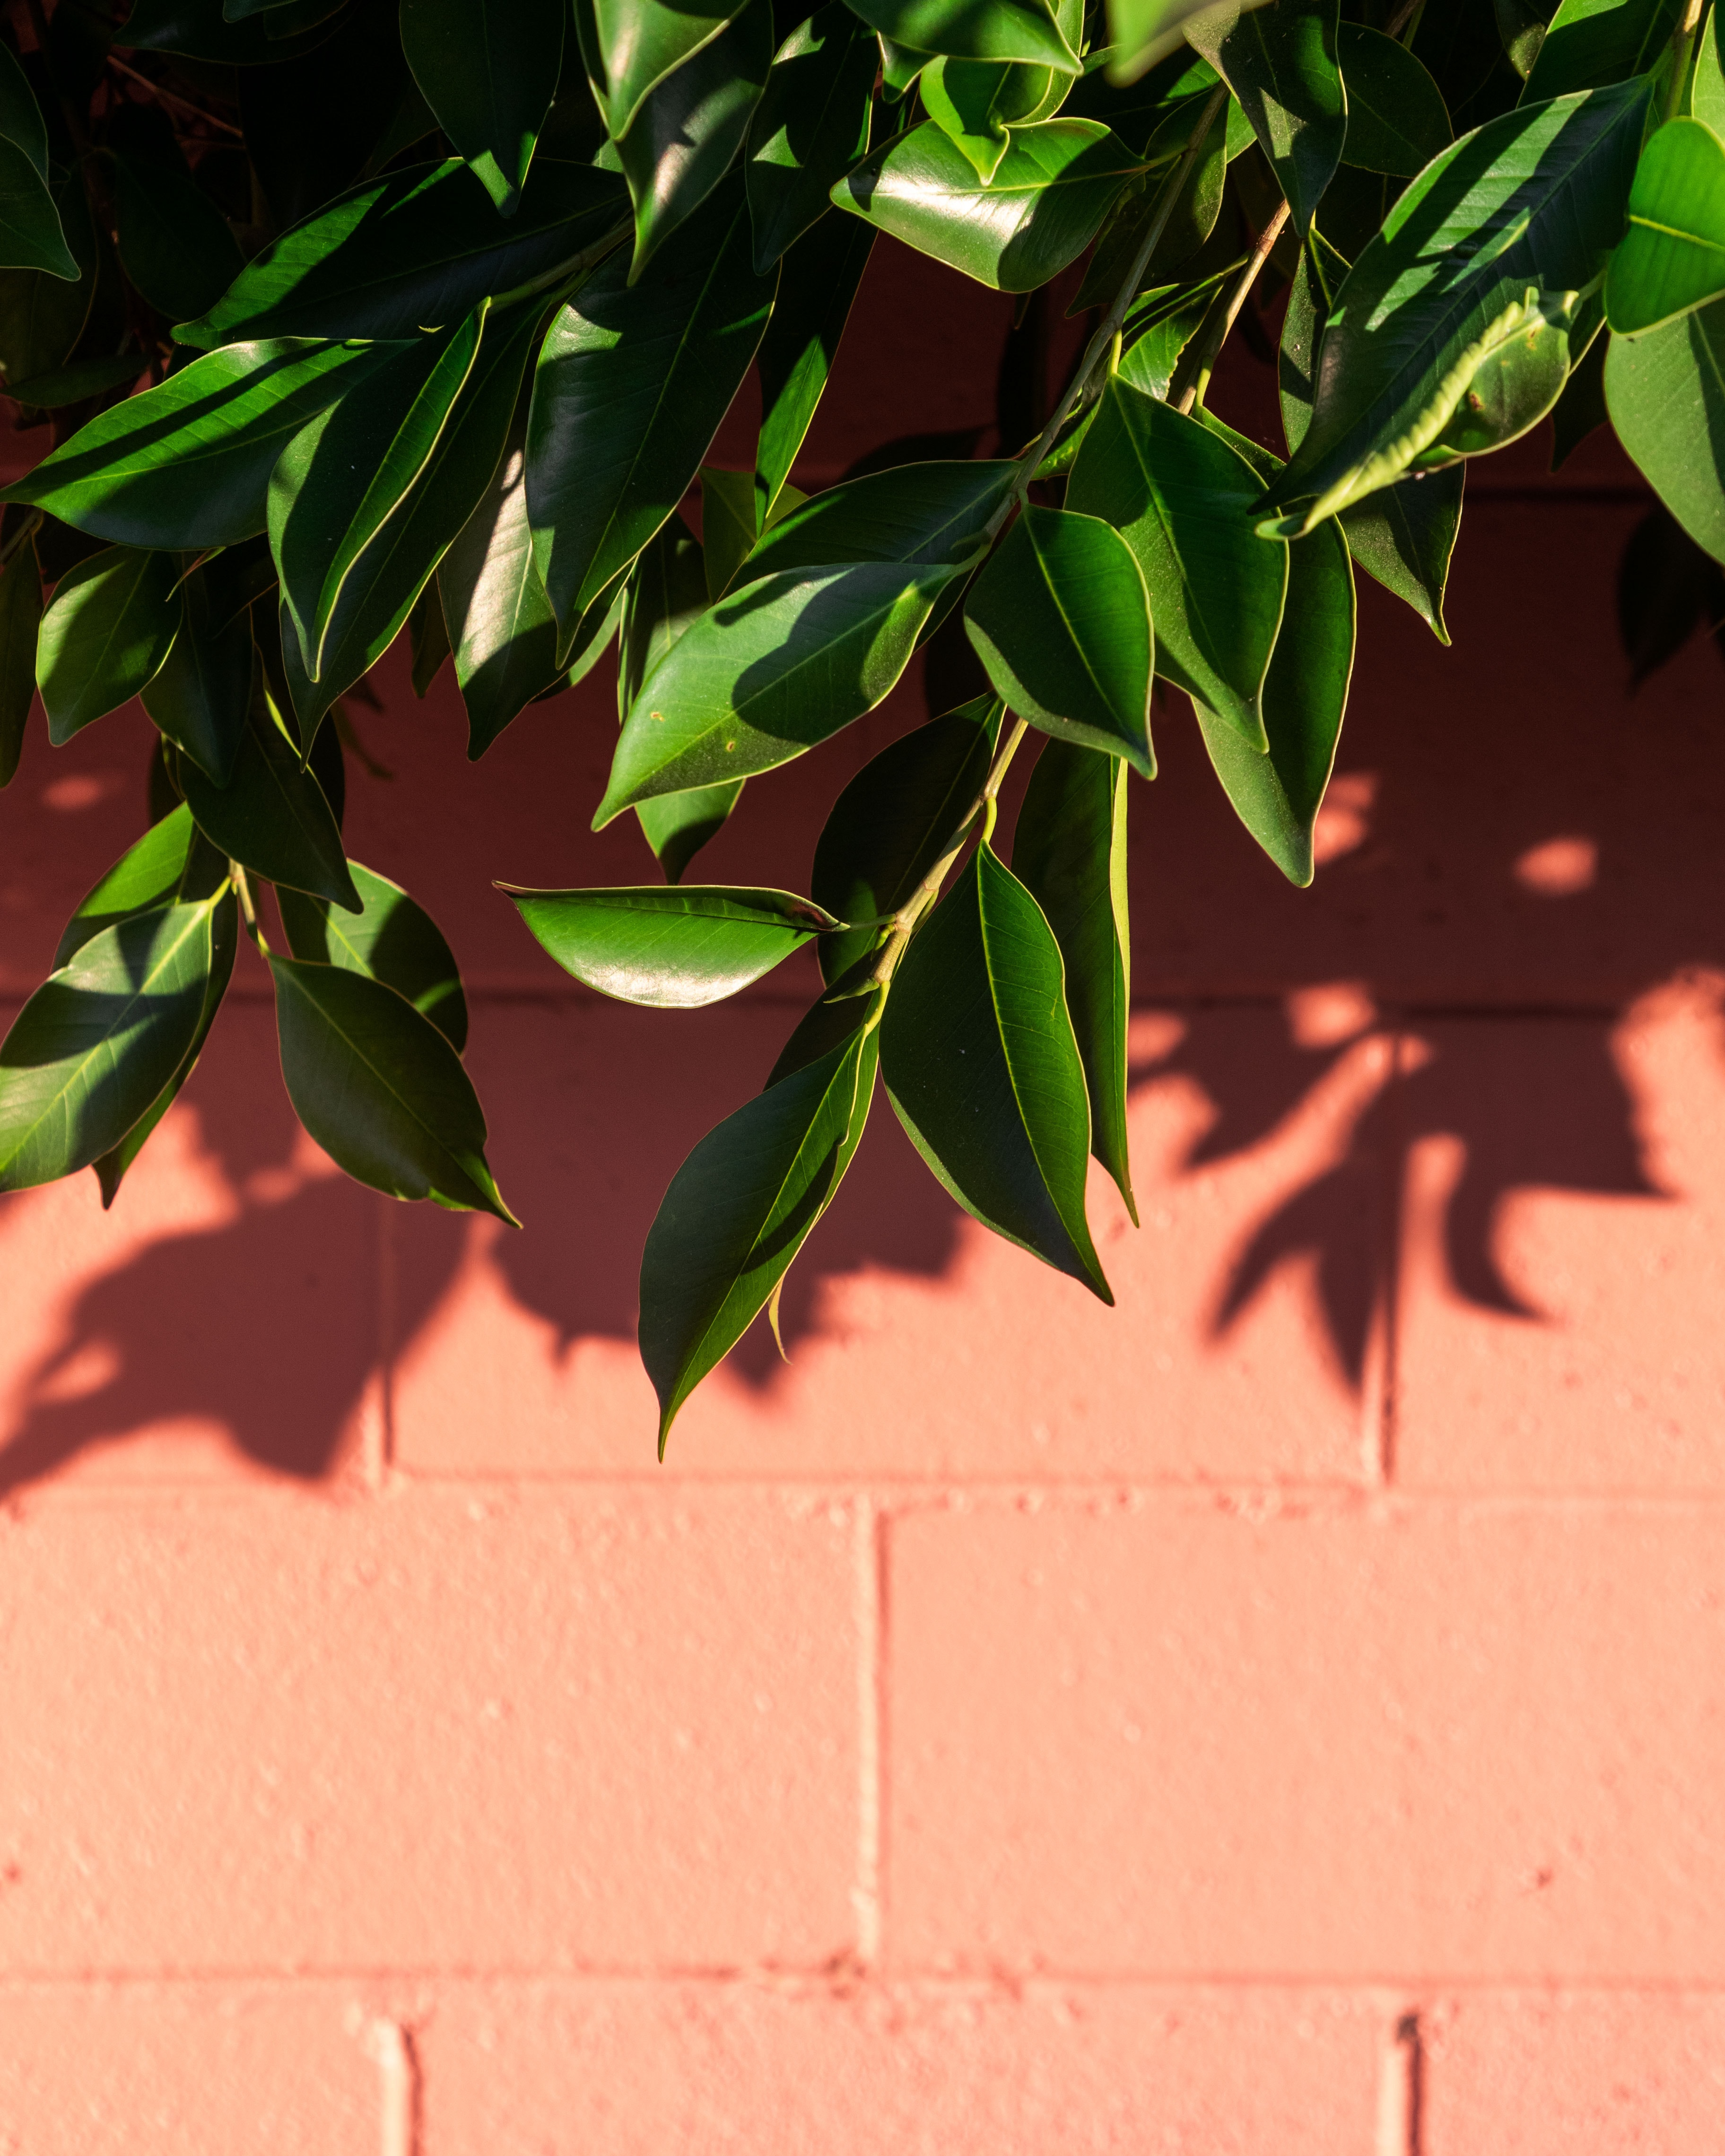 118542 download wallpaper Wall, Leaves, Plant, Macro, Branch, Shadow screensavers and pictures for free